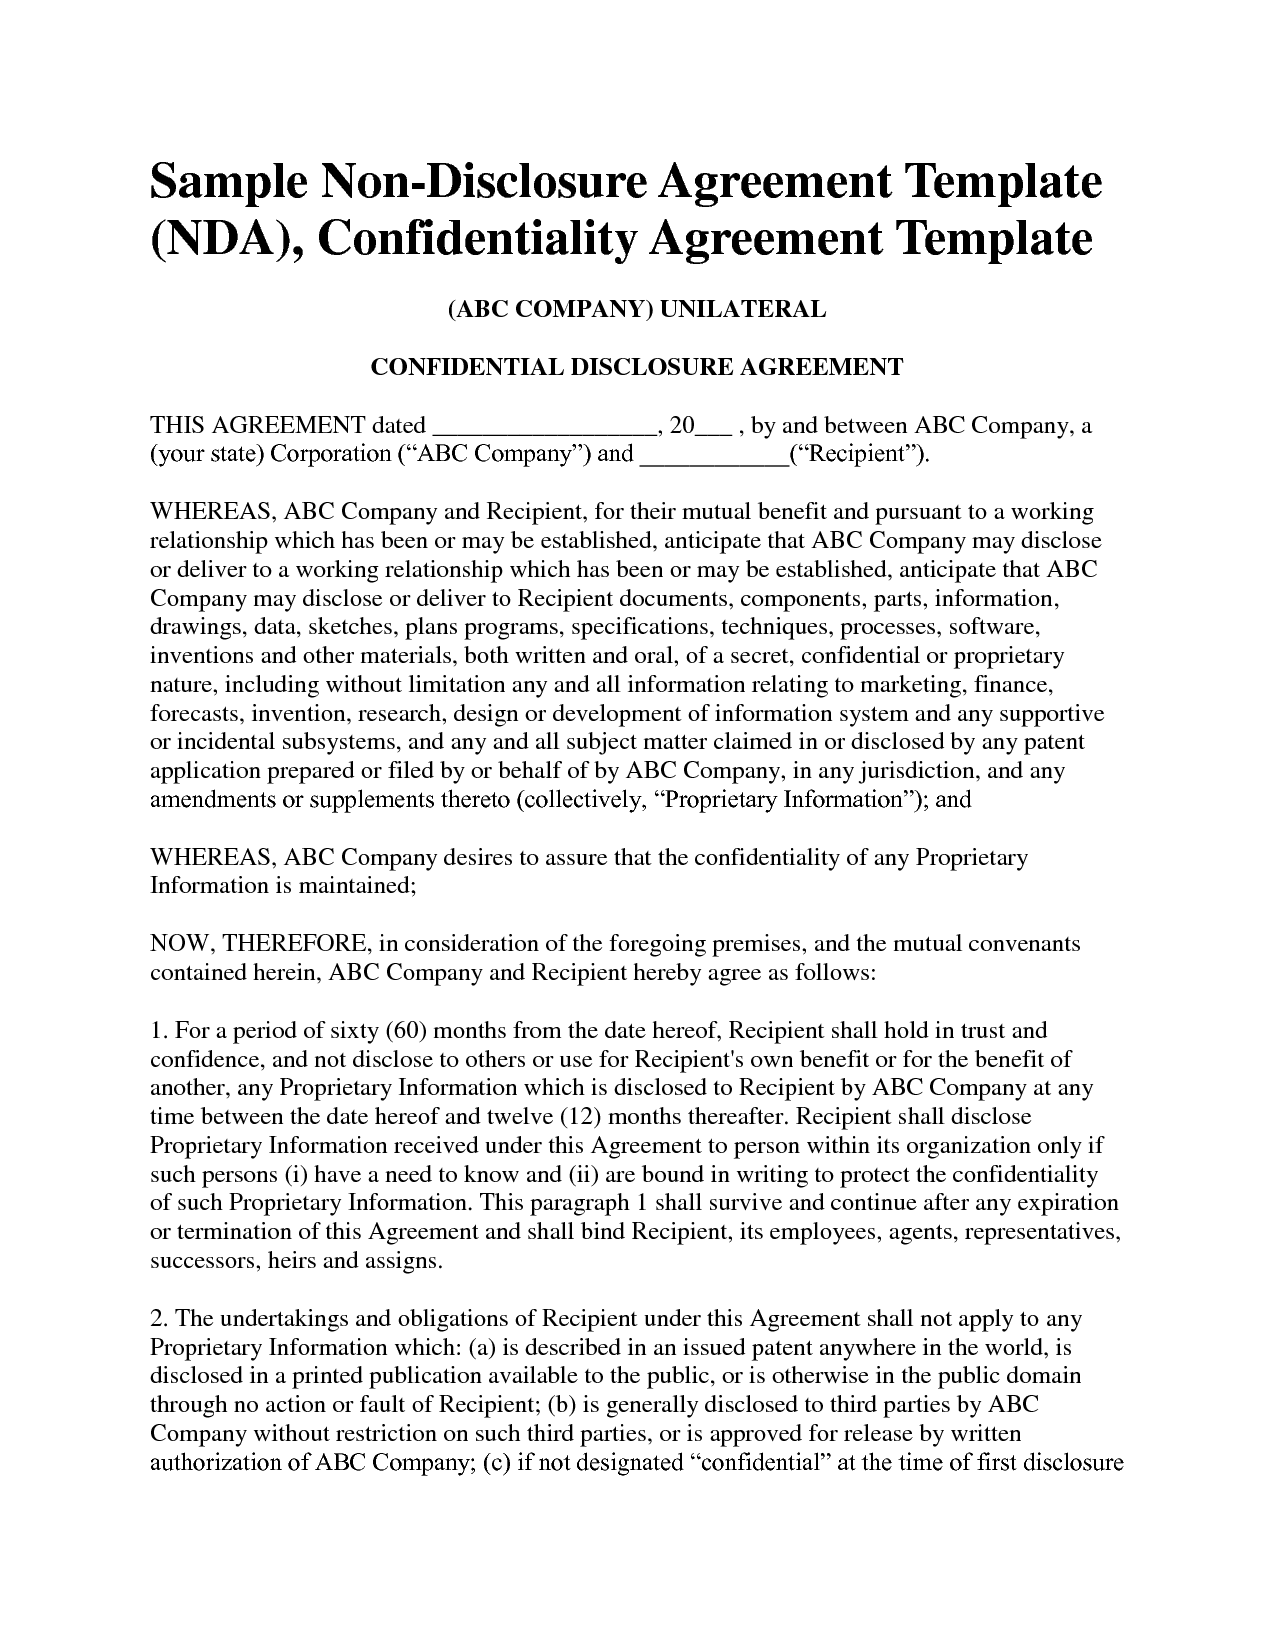 This agreement constitutes the entire agreement with respect to the confidential information disclosed herein and supersedes all prior or contemporaneous oral or written agreements concerning such confidential information. Pin On Legal